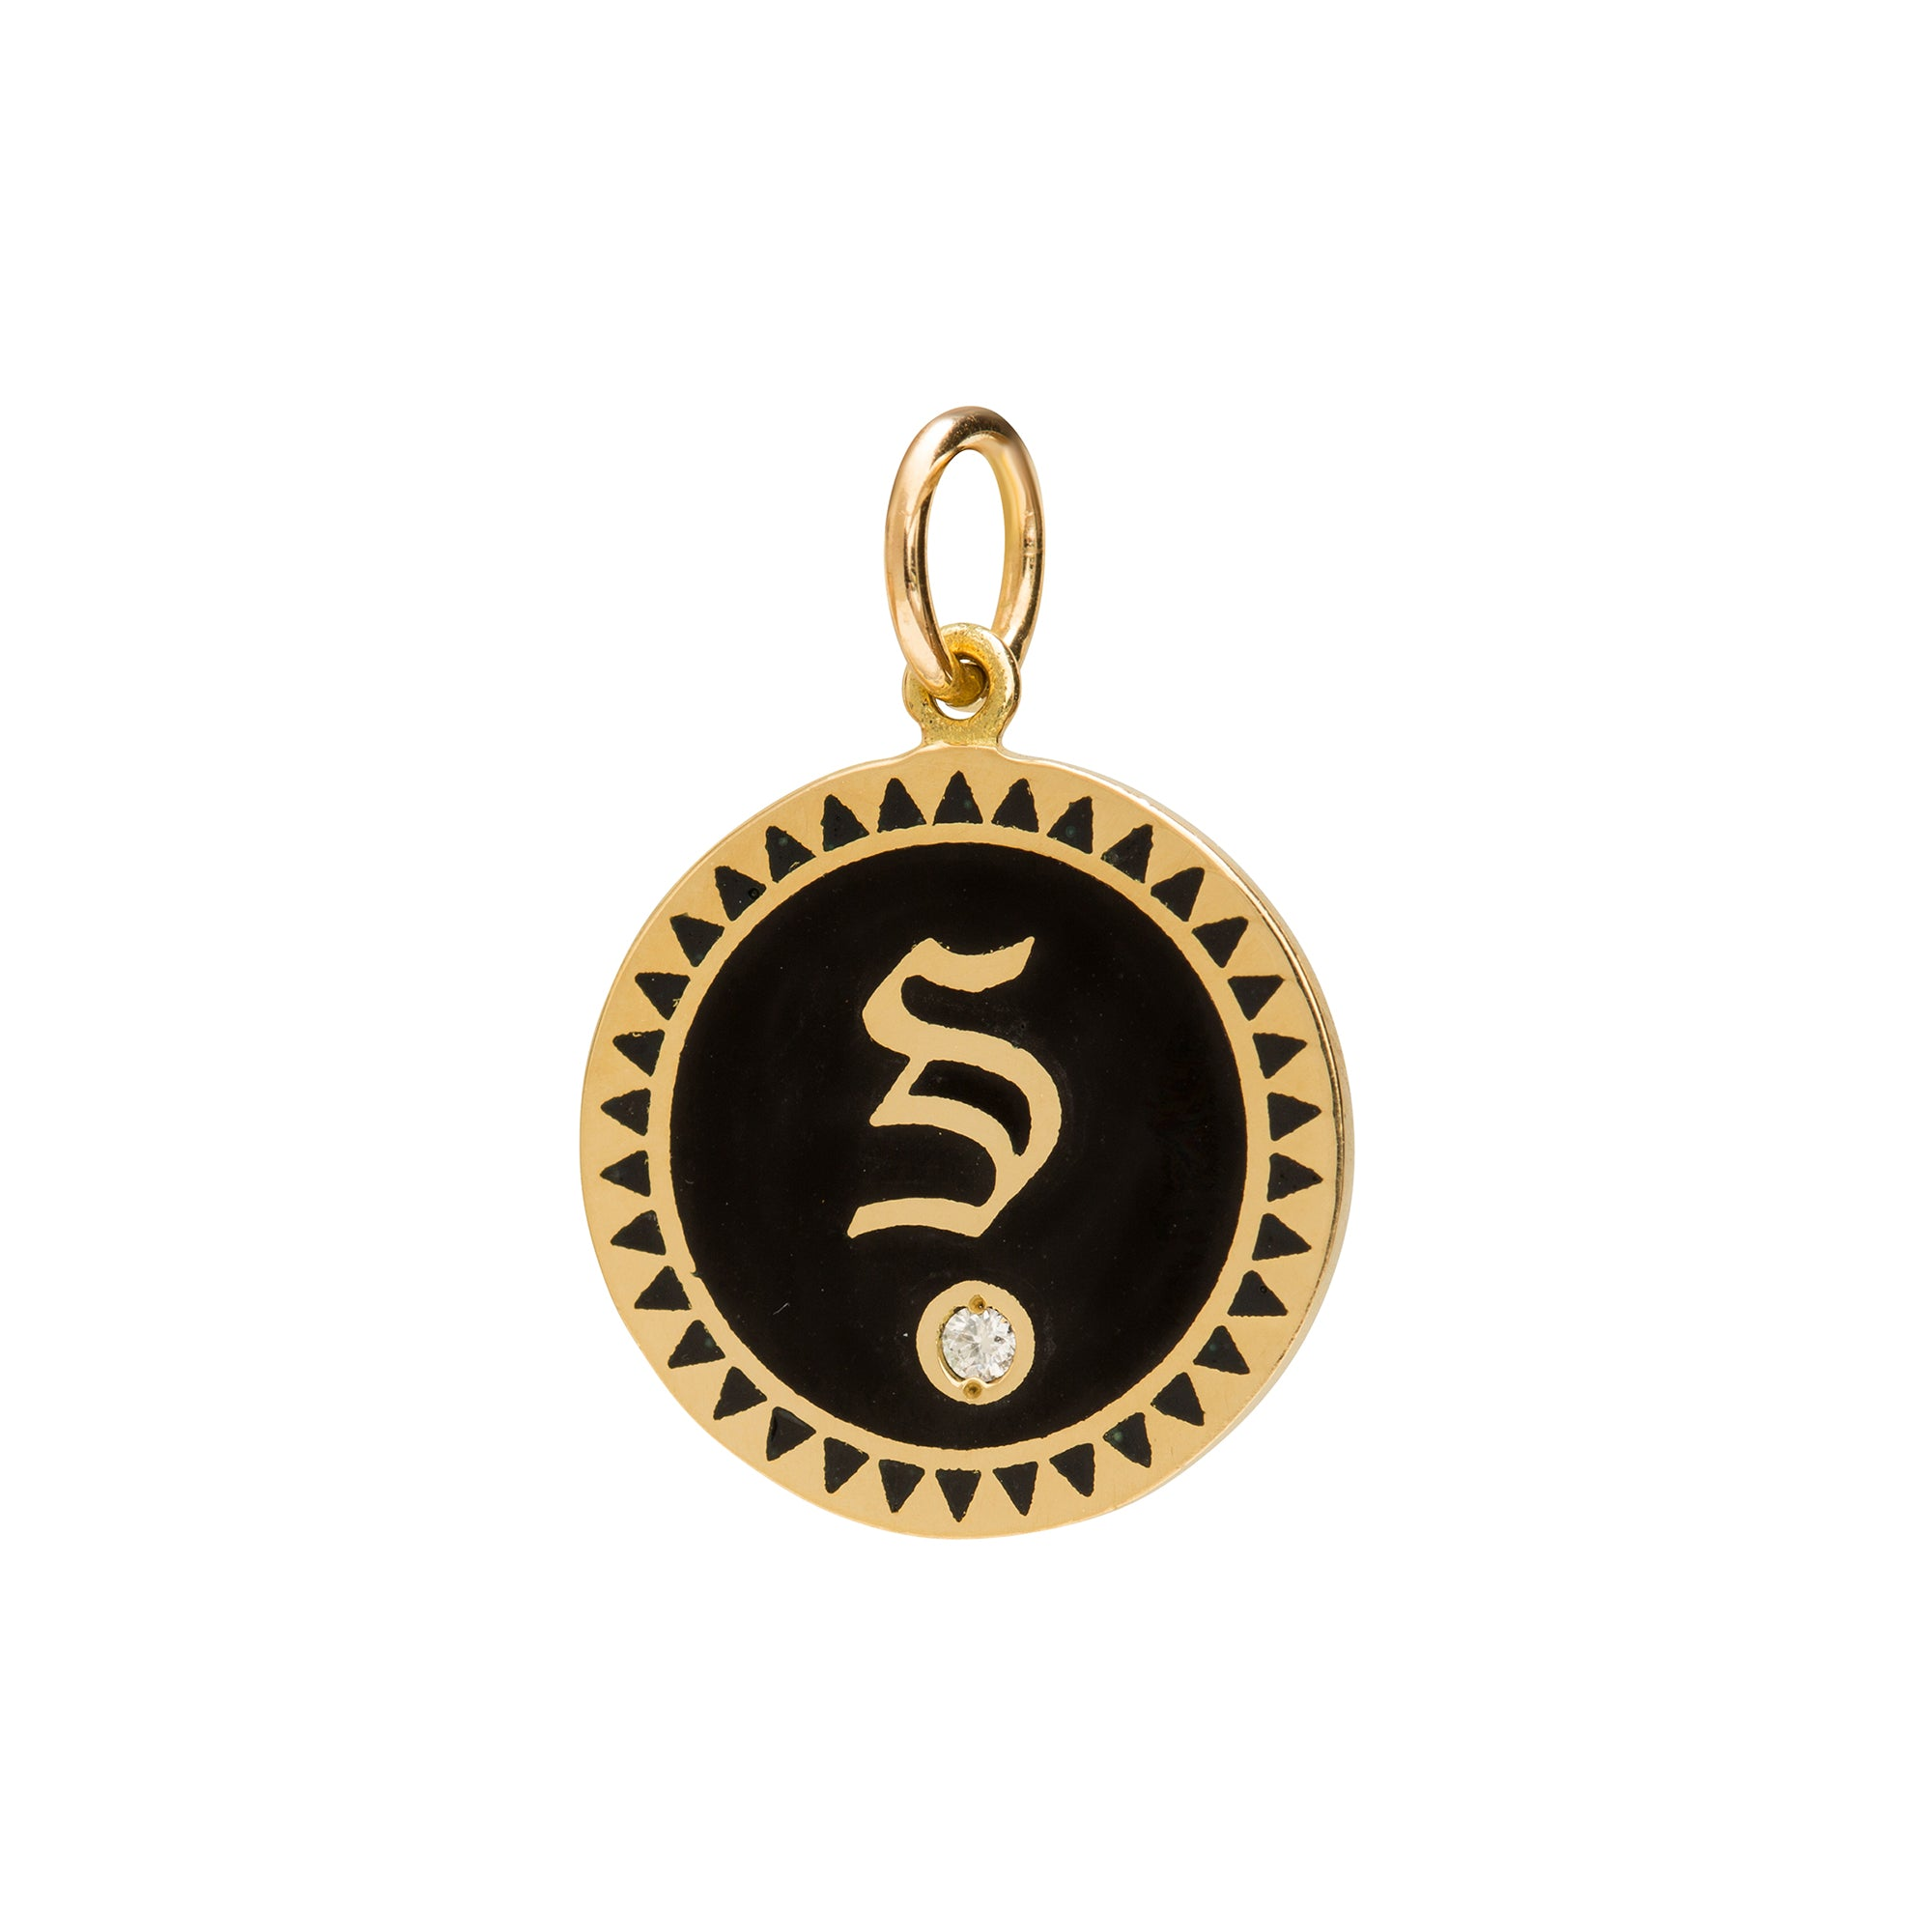 Black Enamel Initial Medallion by Foundrae for Broken English Jewelry